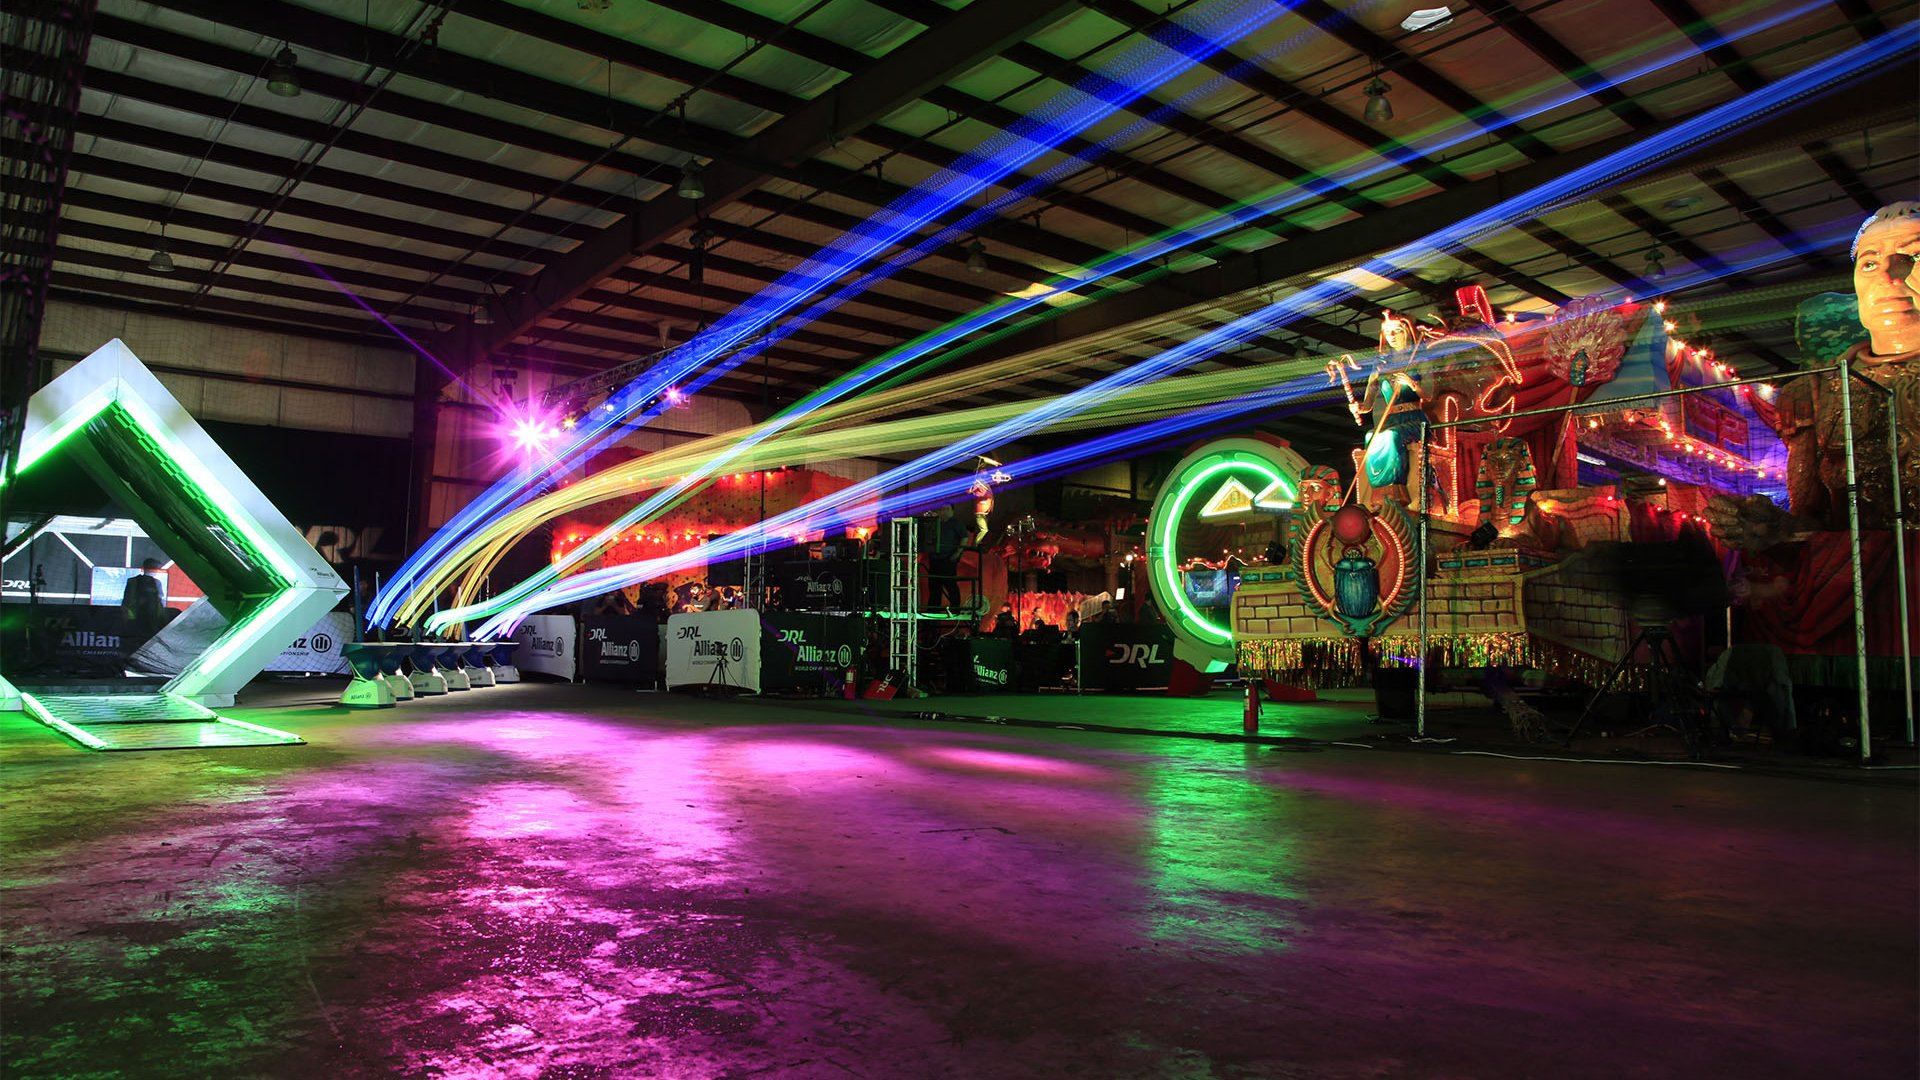 Drone Racing League competition at Mardi Gras World.